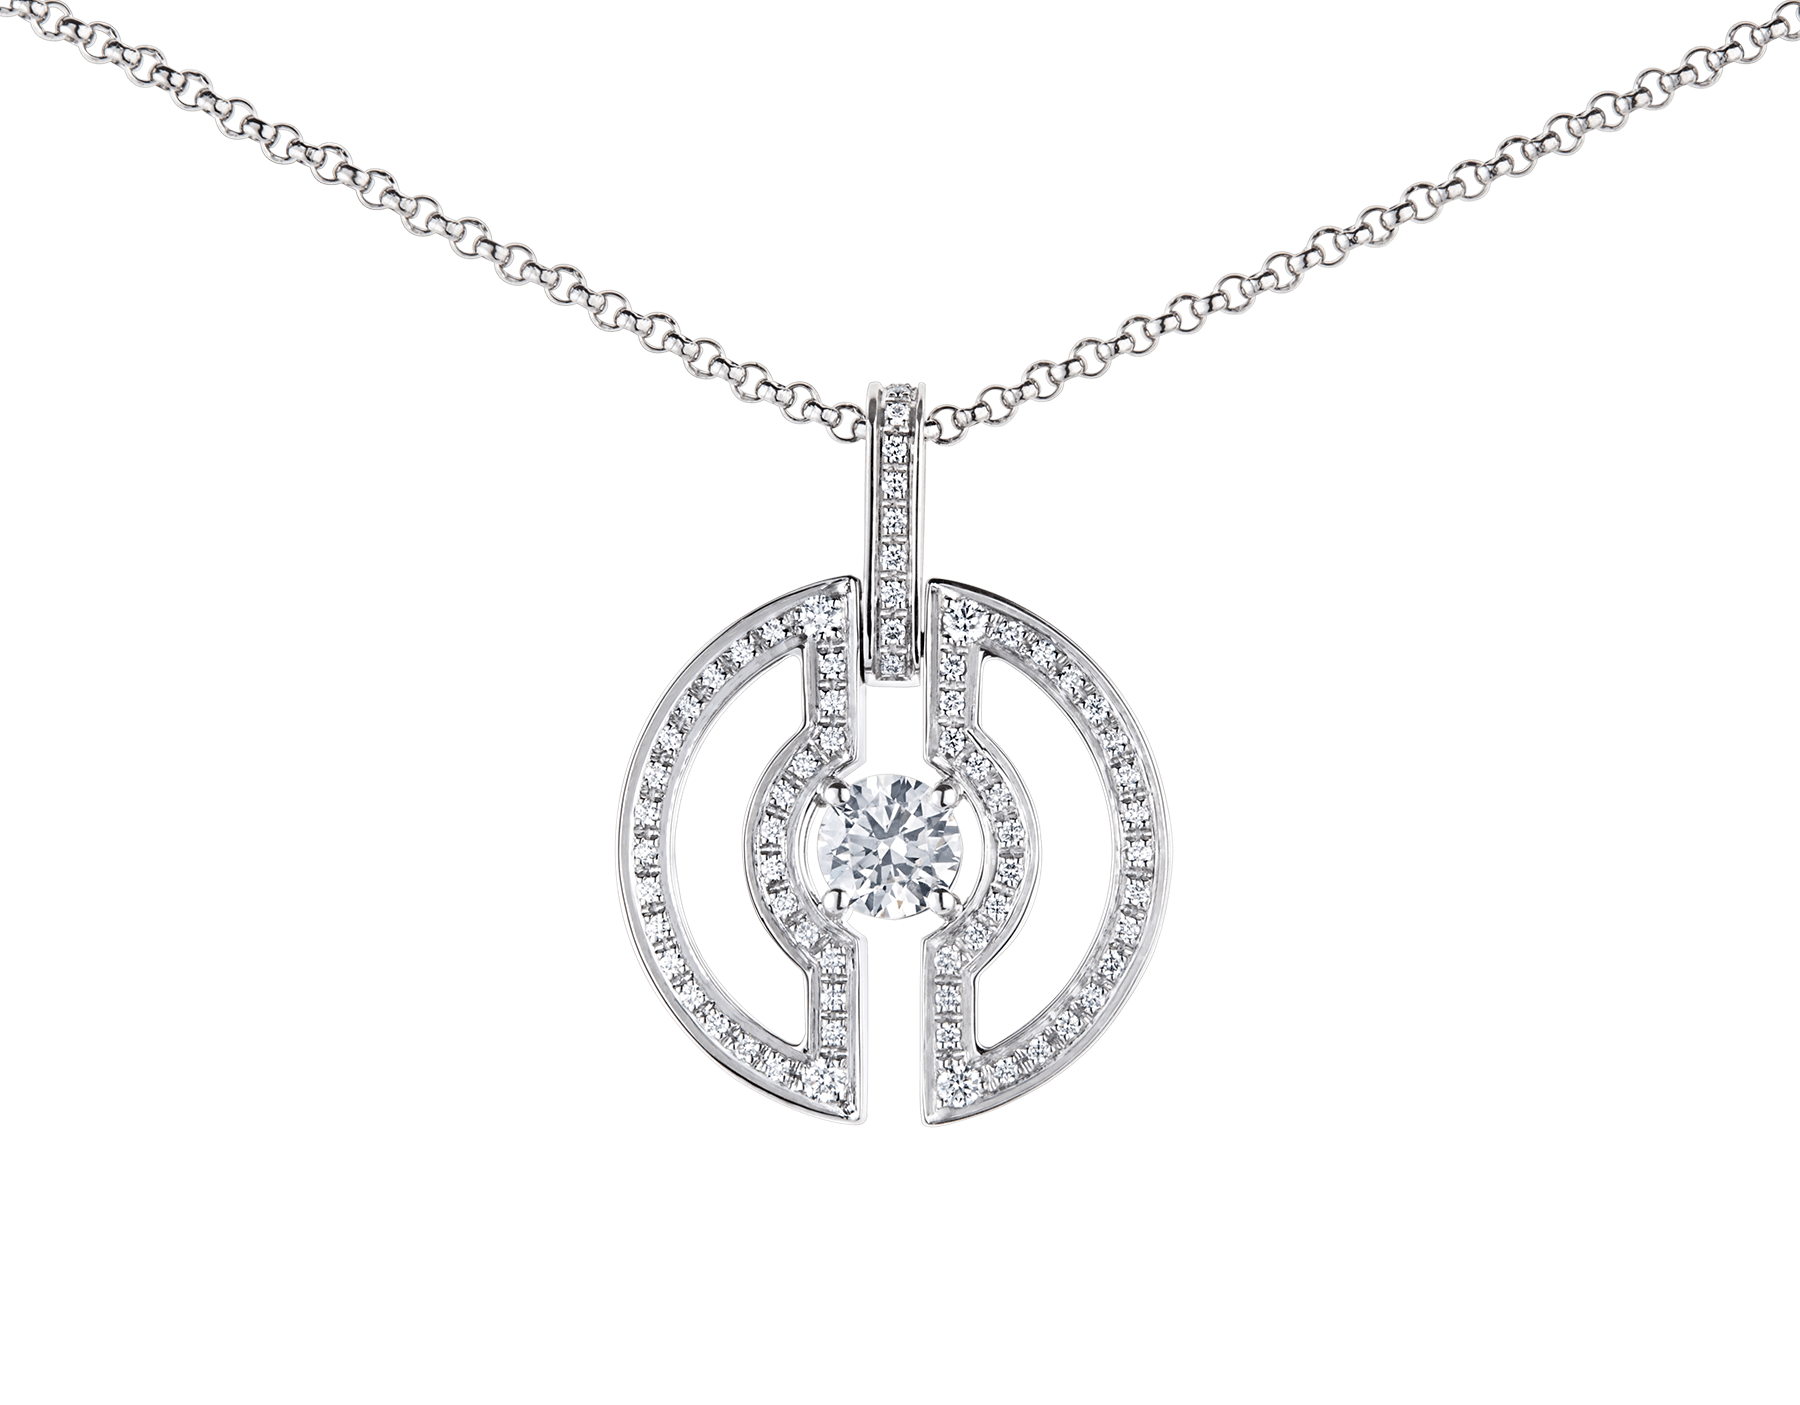 Parentesi necklace with 18 kt white gold chain and pendant, set with a central diamond and pavé diamonds on the edges. 354313 image 4